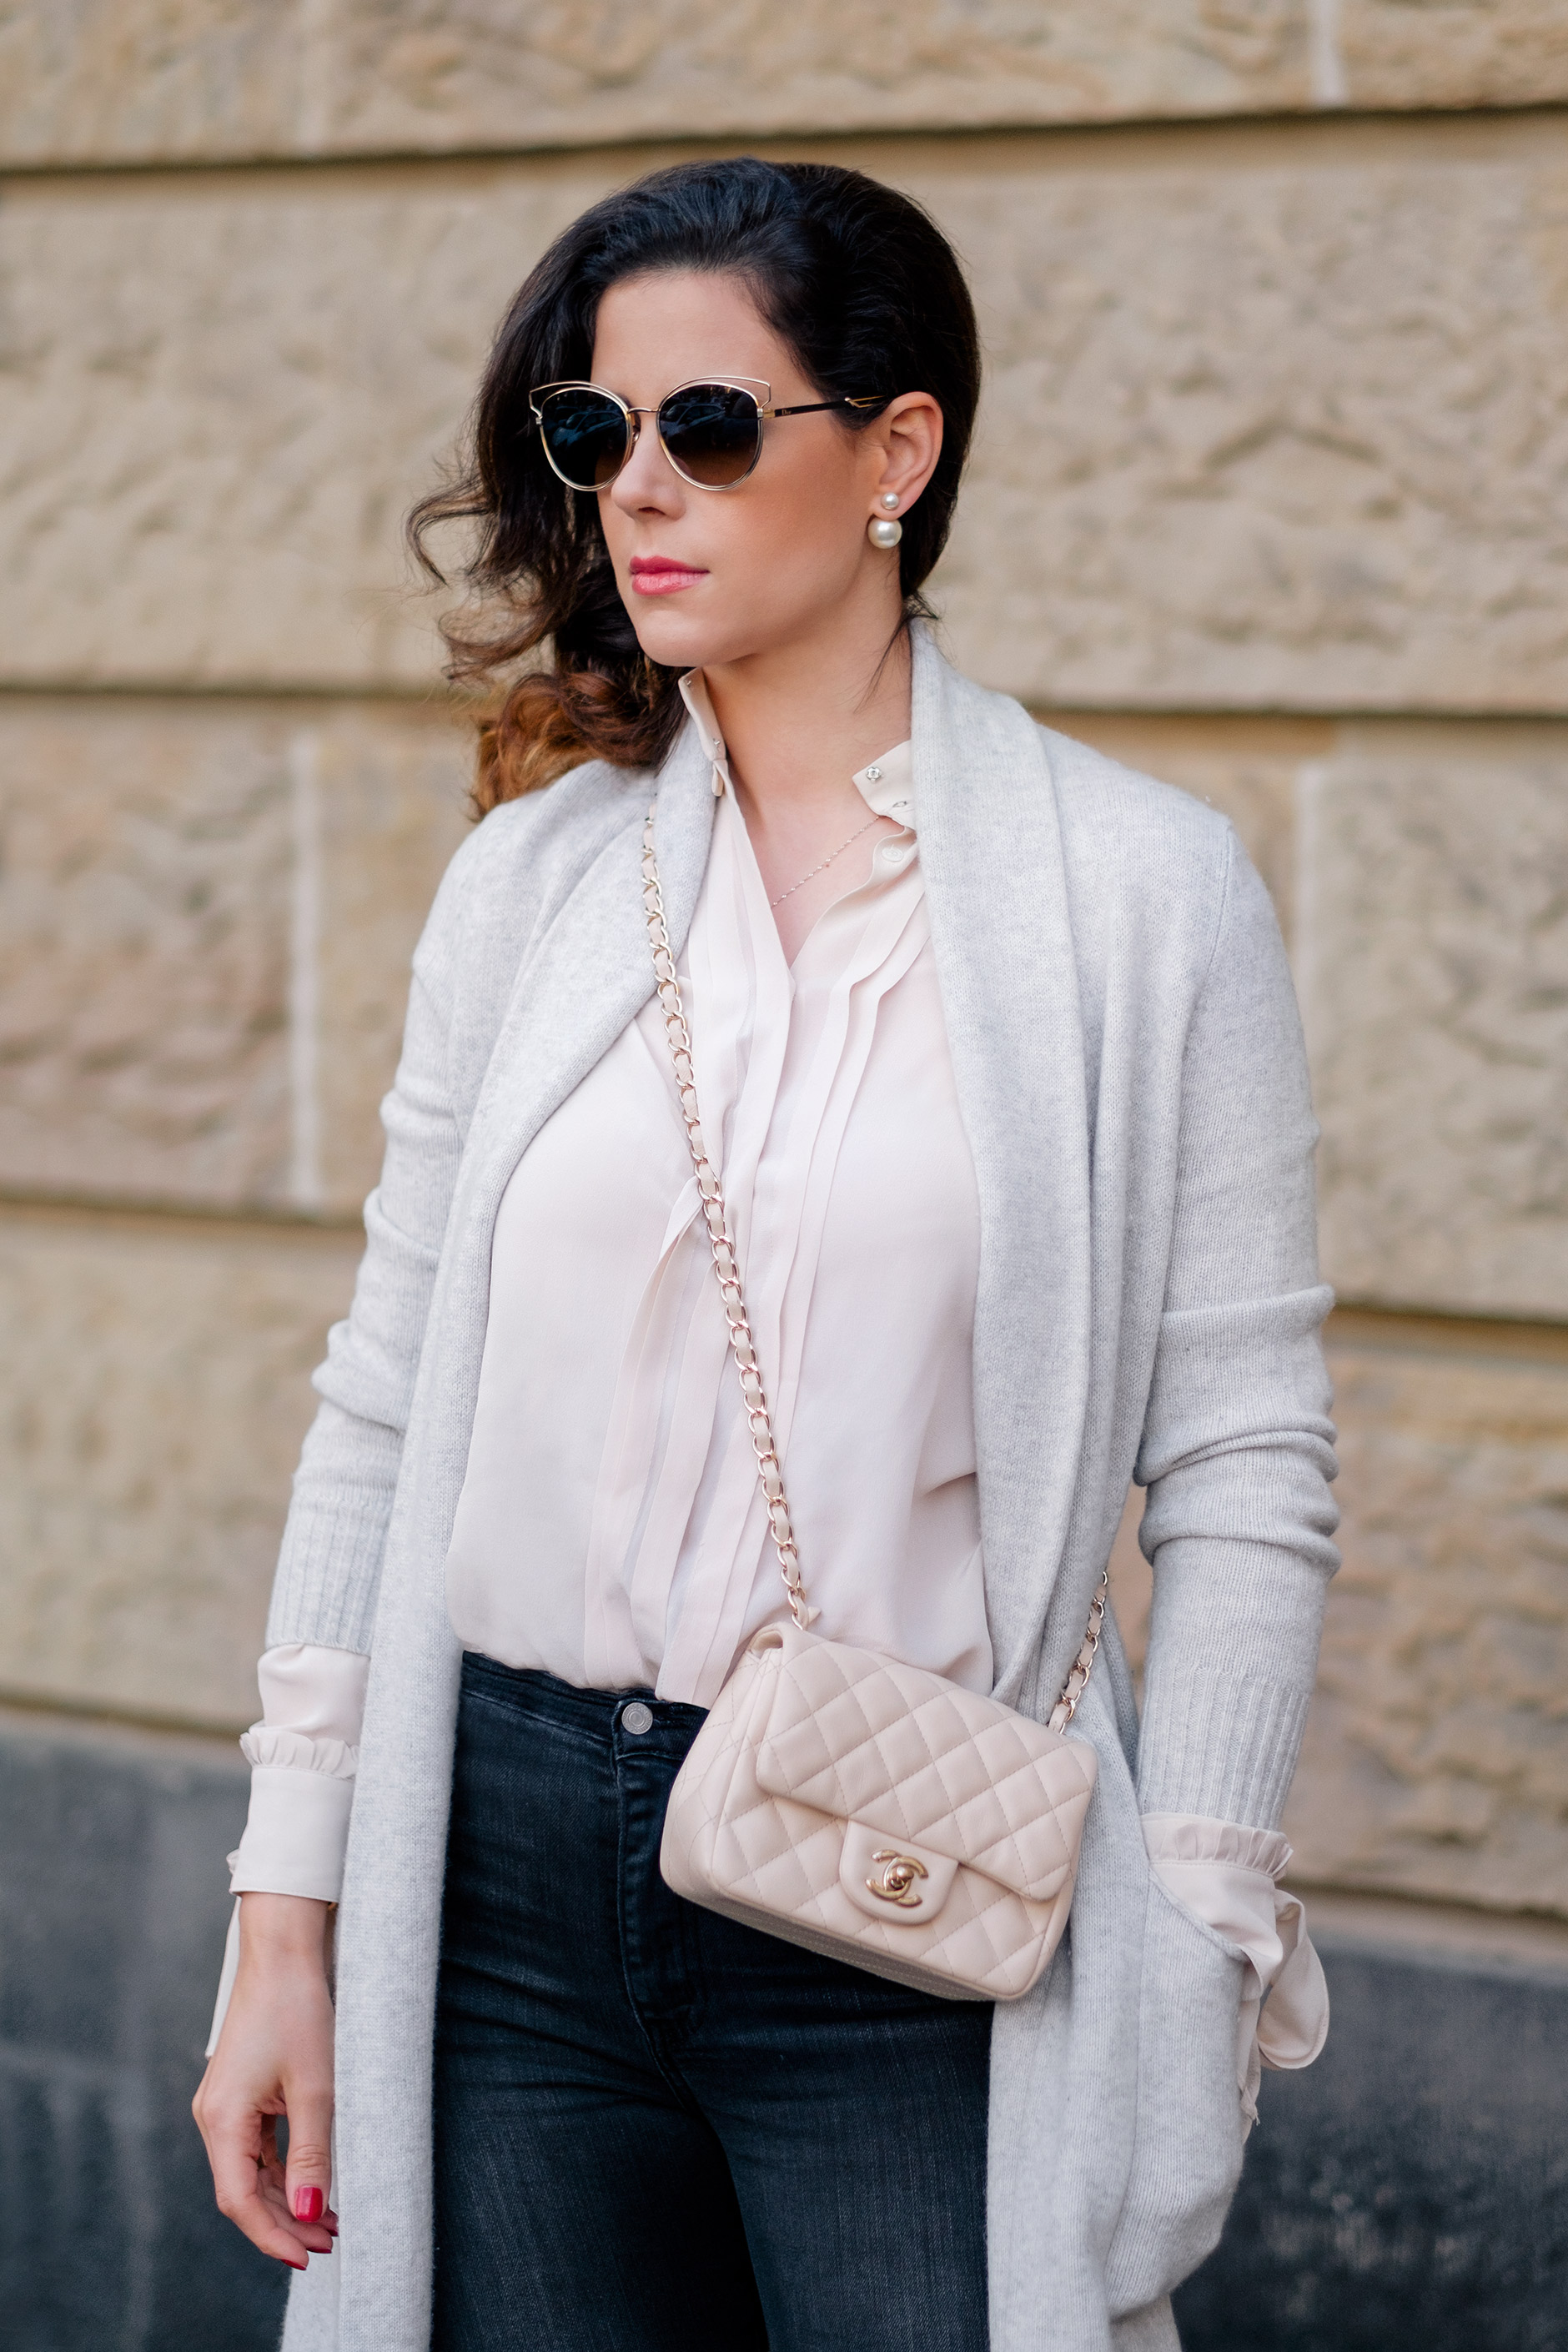 dior-sideral-sunglasses-beige-chanel-mini